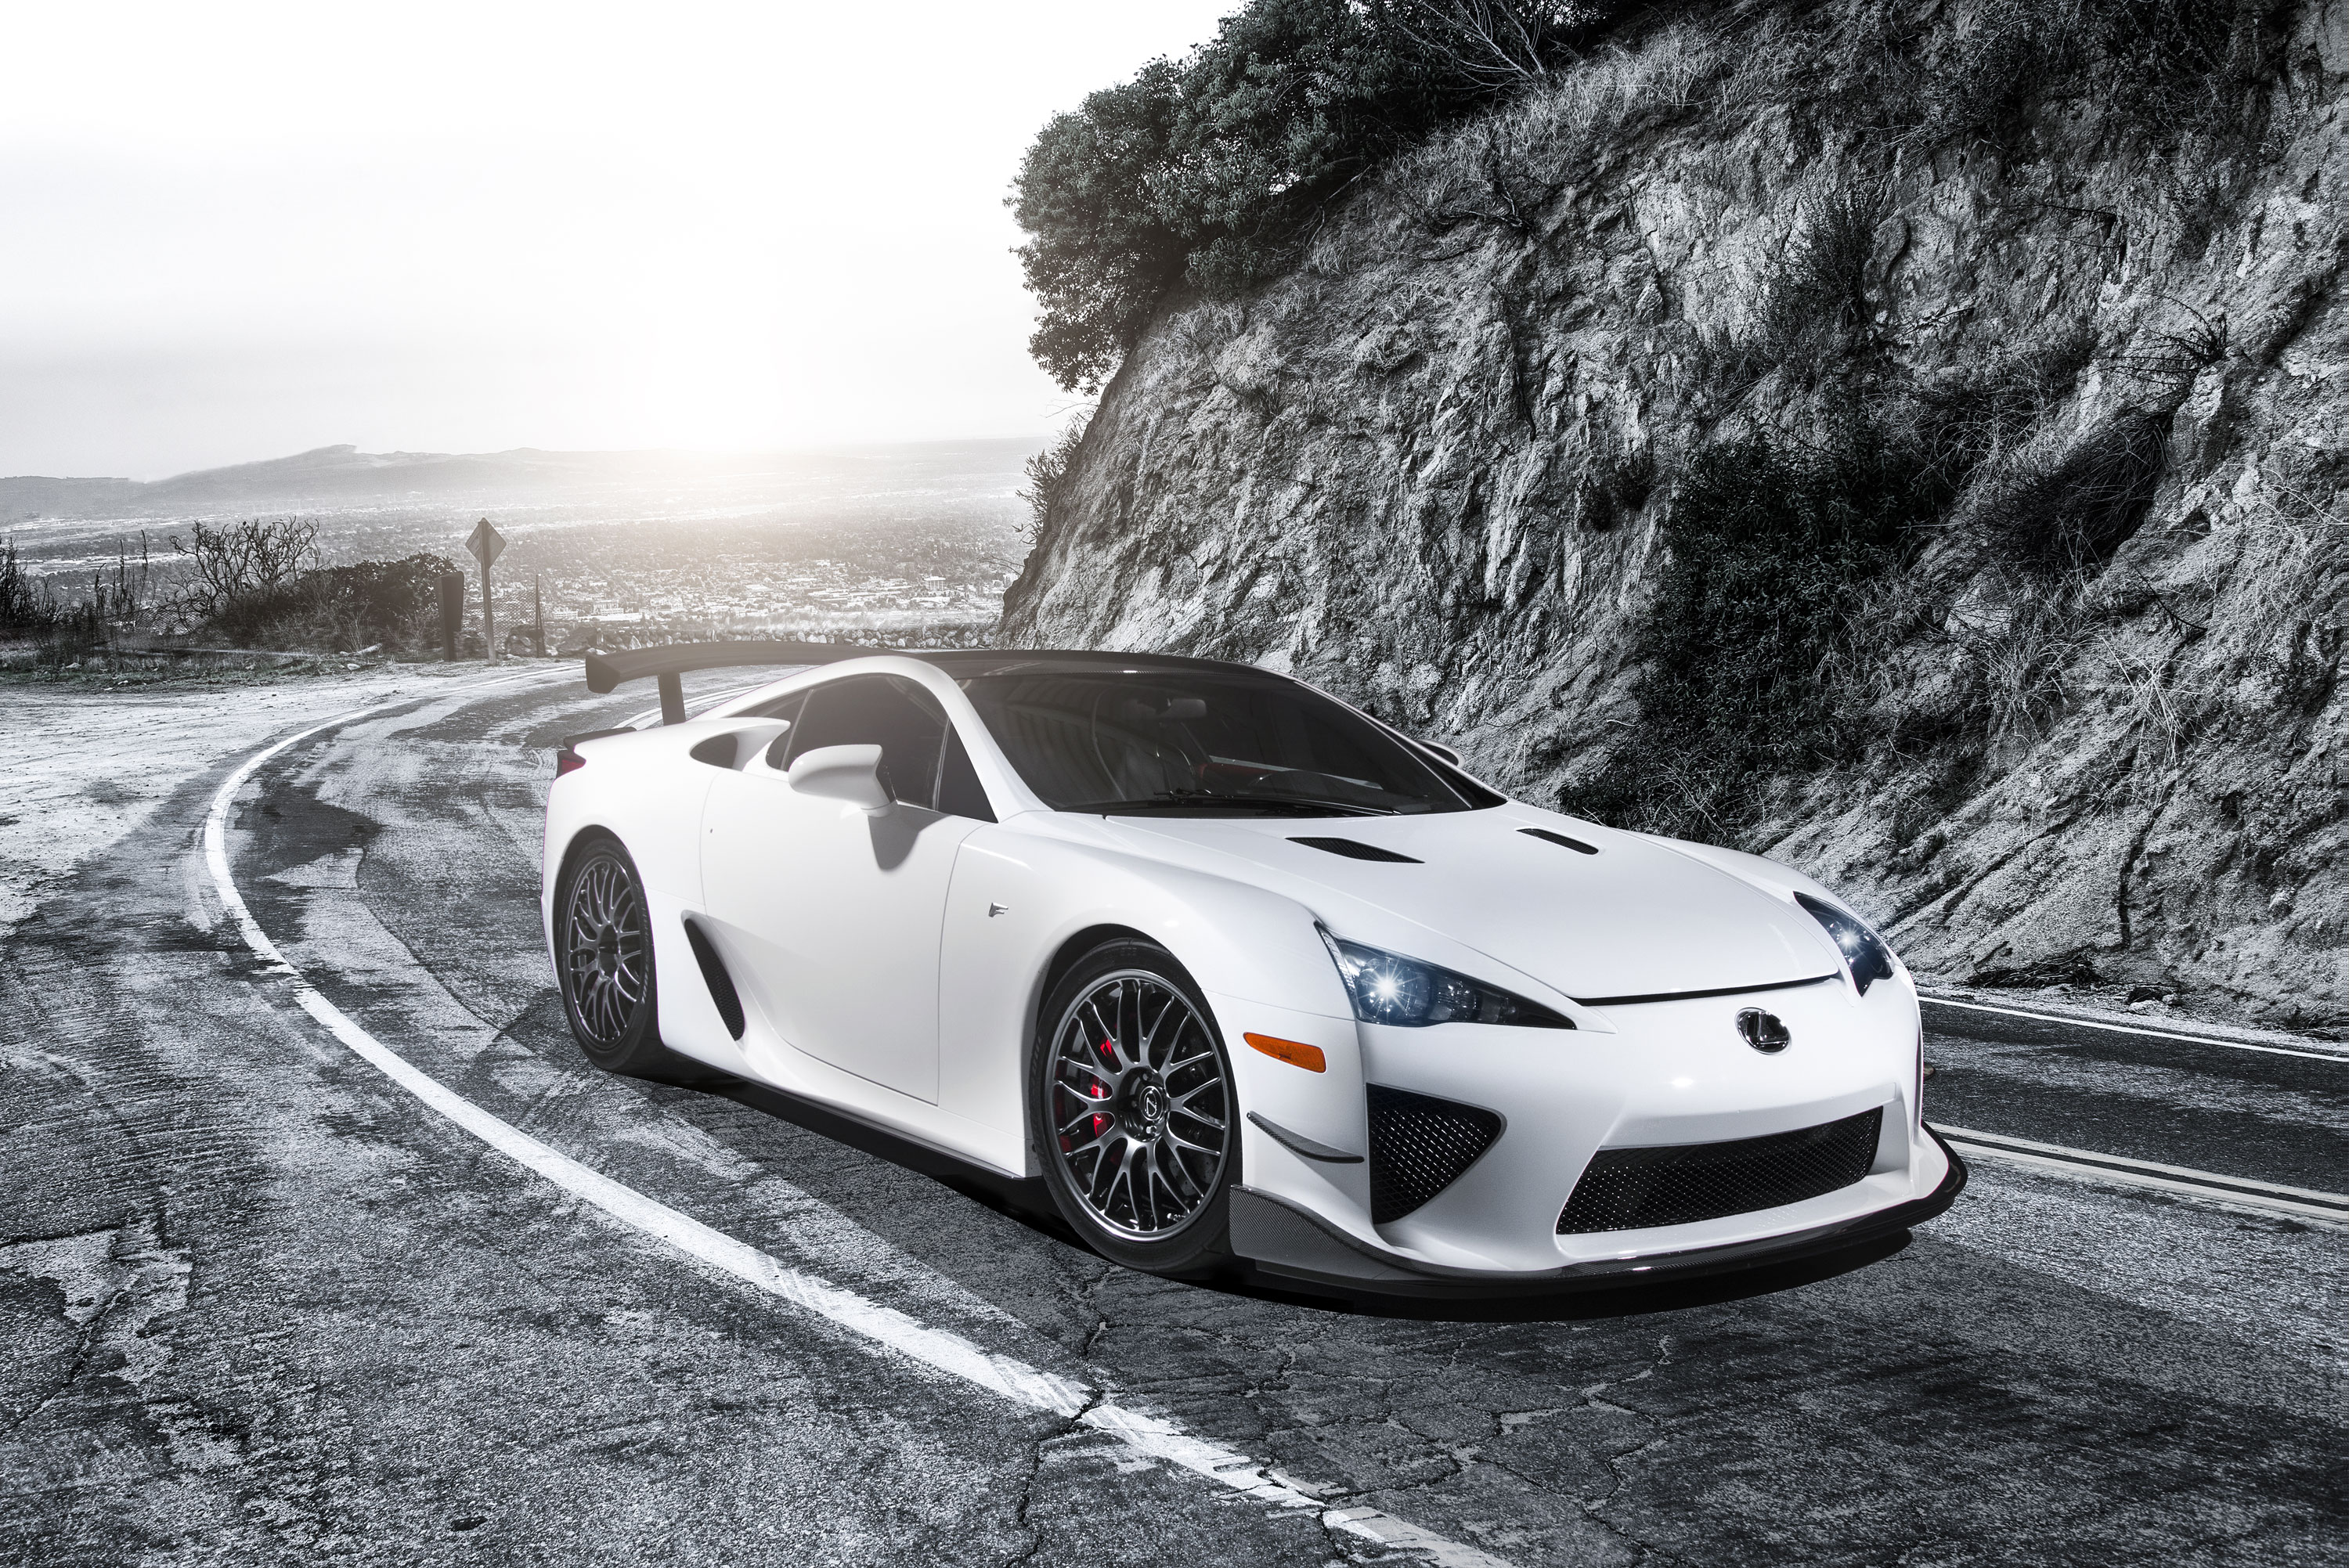 Lexus LFA Successor In The Works With 800 HP  Art of Gears